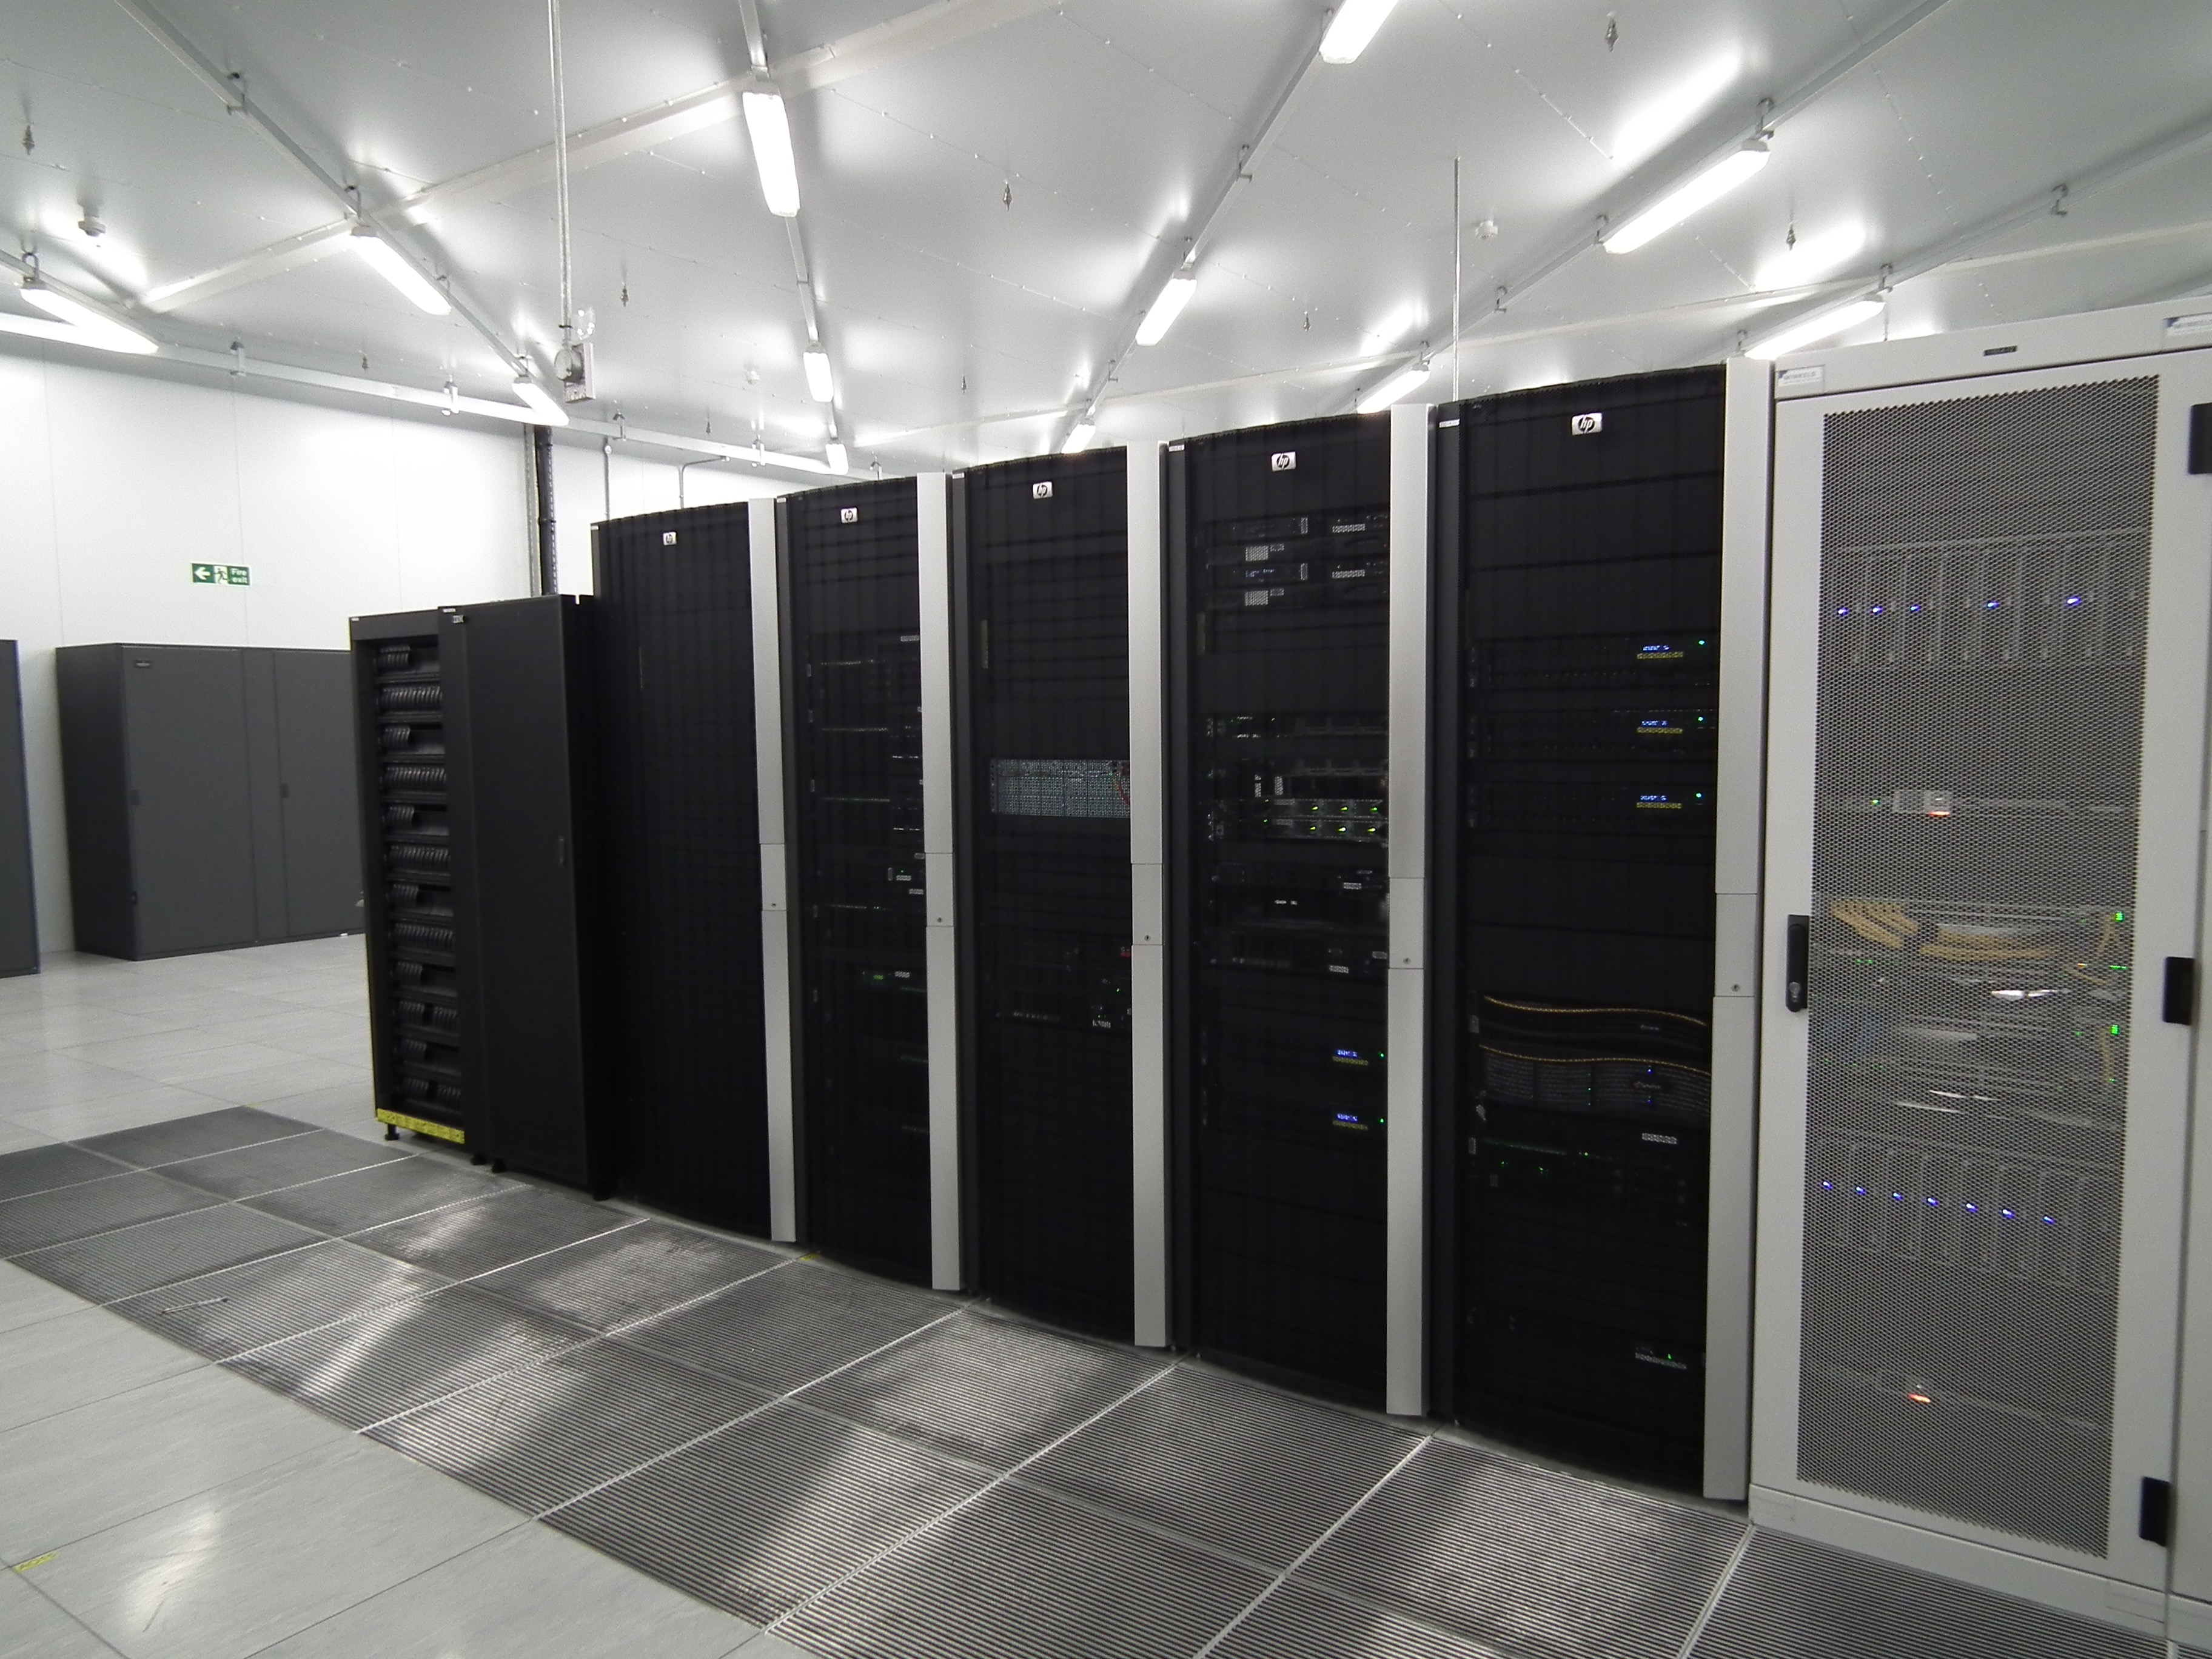 A lot of the equipment in the data centre is Dell or HP.